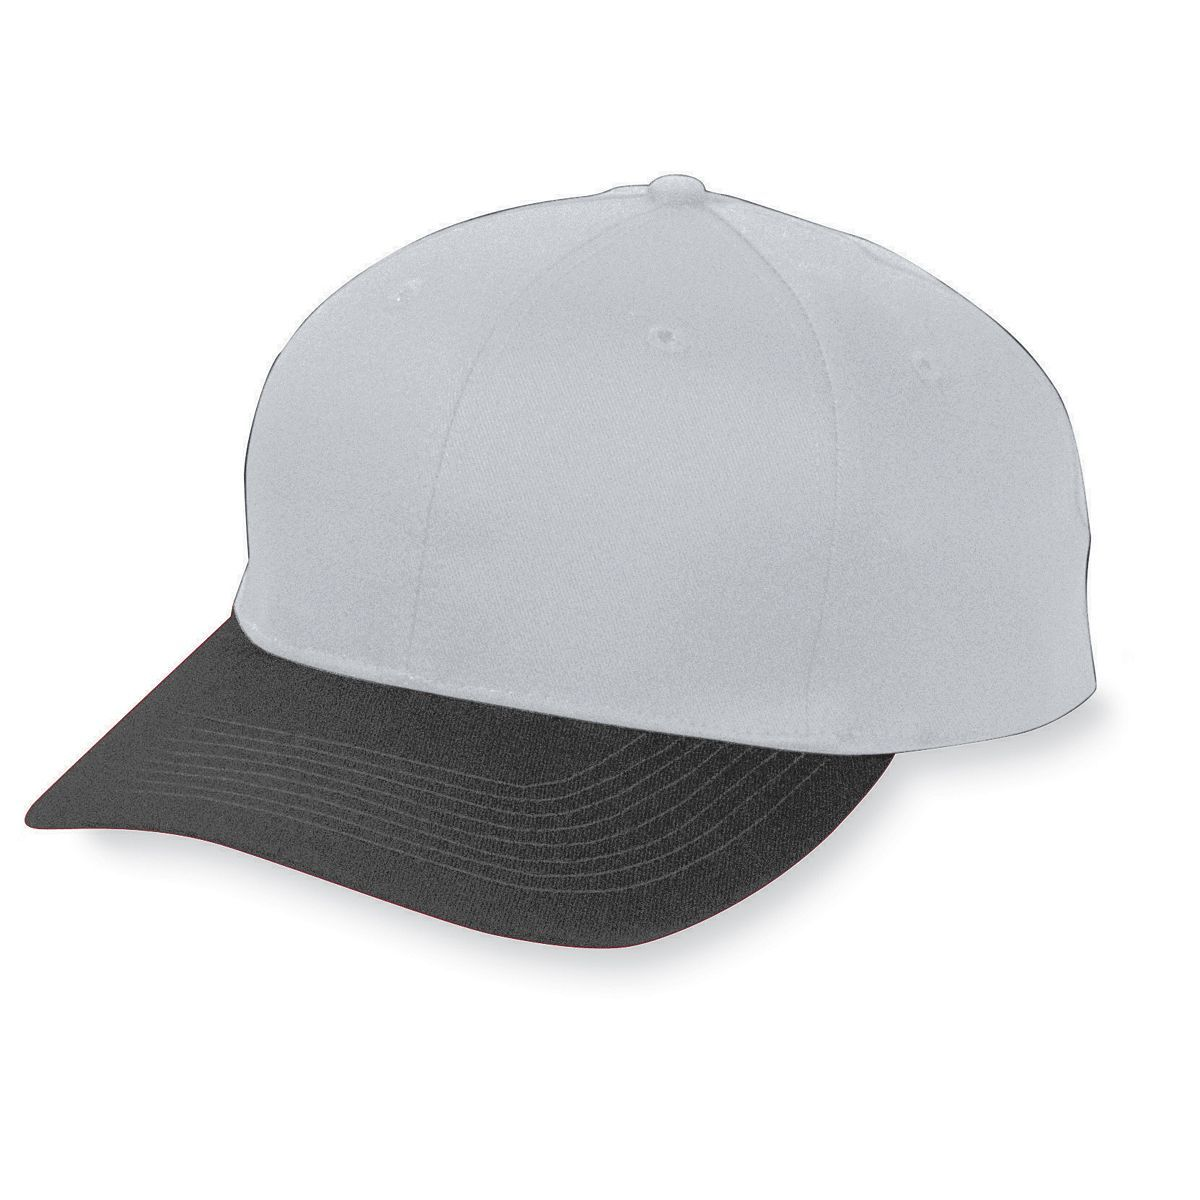 Six-Panel Cotton Twill Low-Profile Cap - SILVER GREY/BLACK